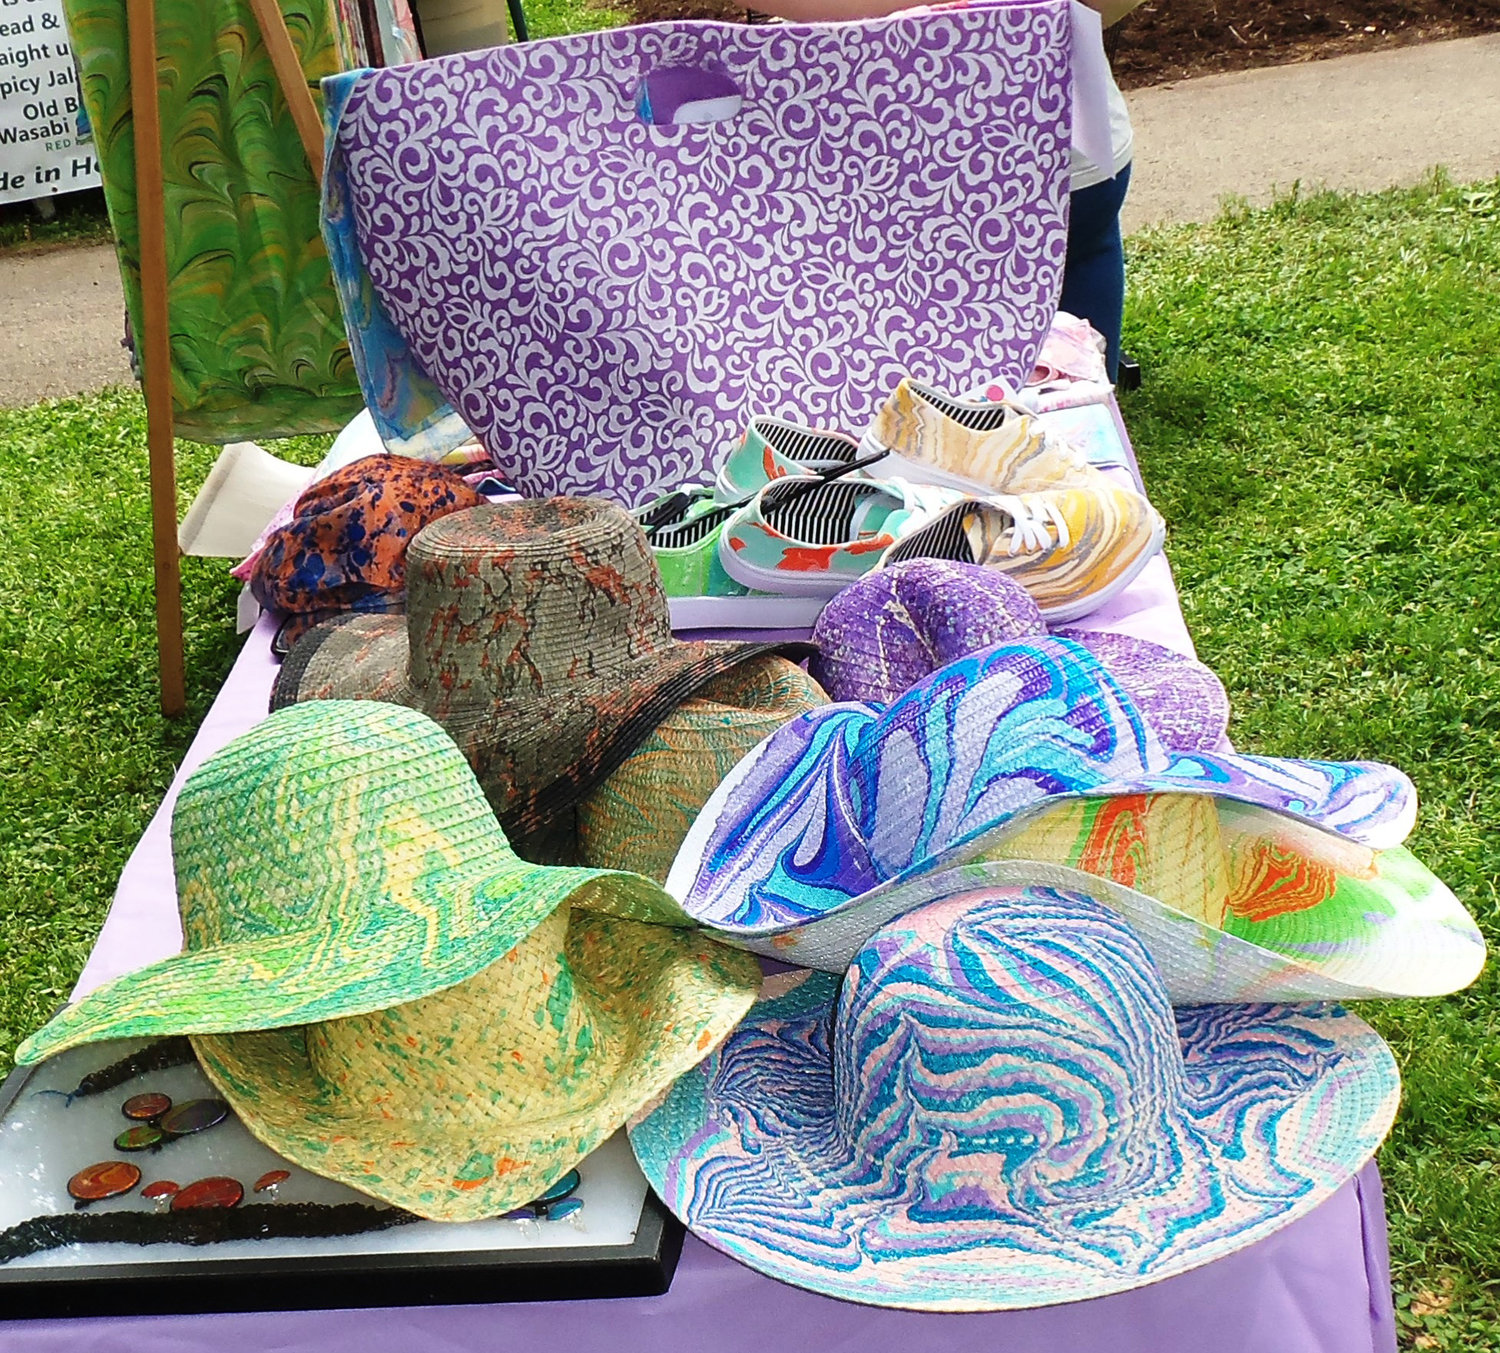 Tie-dye hats were on display next to Stephanie Kelemen's Scarves Happen booth at the Middletown Area Historical Society's Arts & Crafts Fair on June 8.